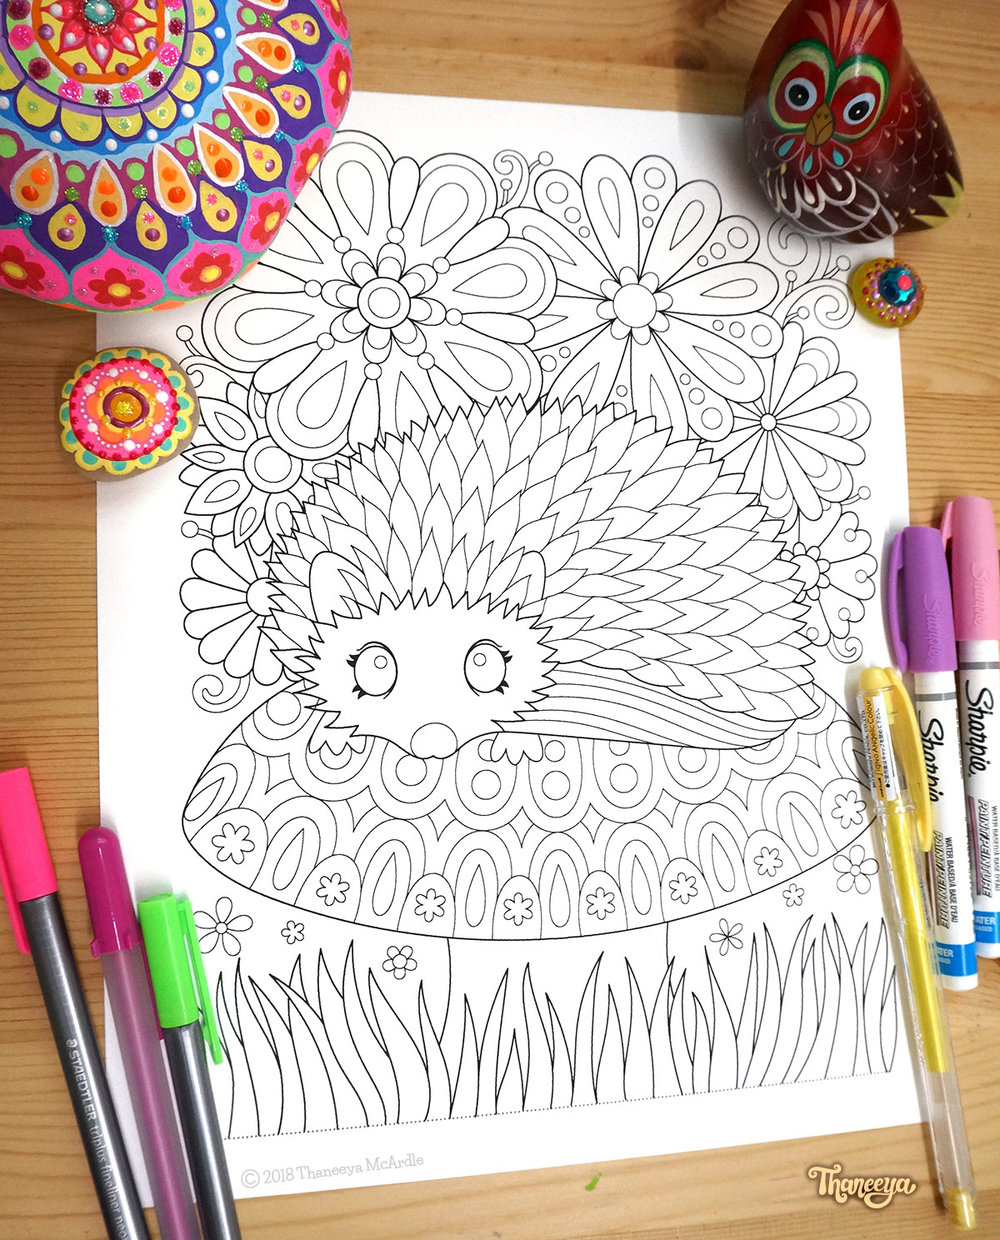 Hedgehog coloring page by Thaneeya McArdle